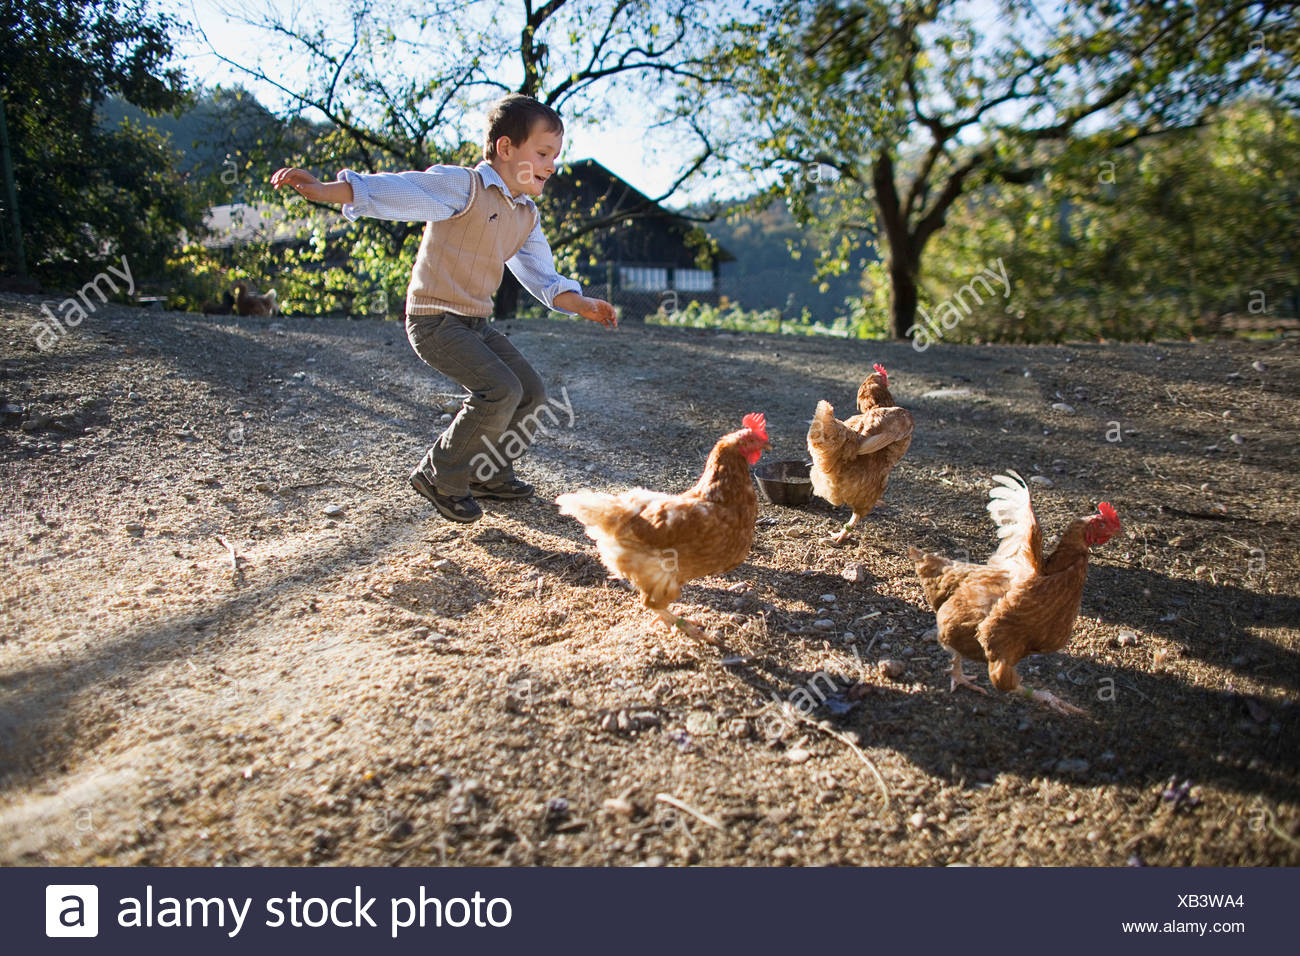 young boy chasing chicken on farm - Stock Image